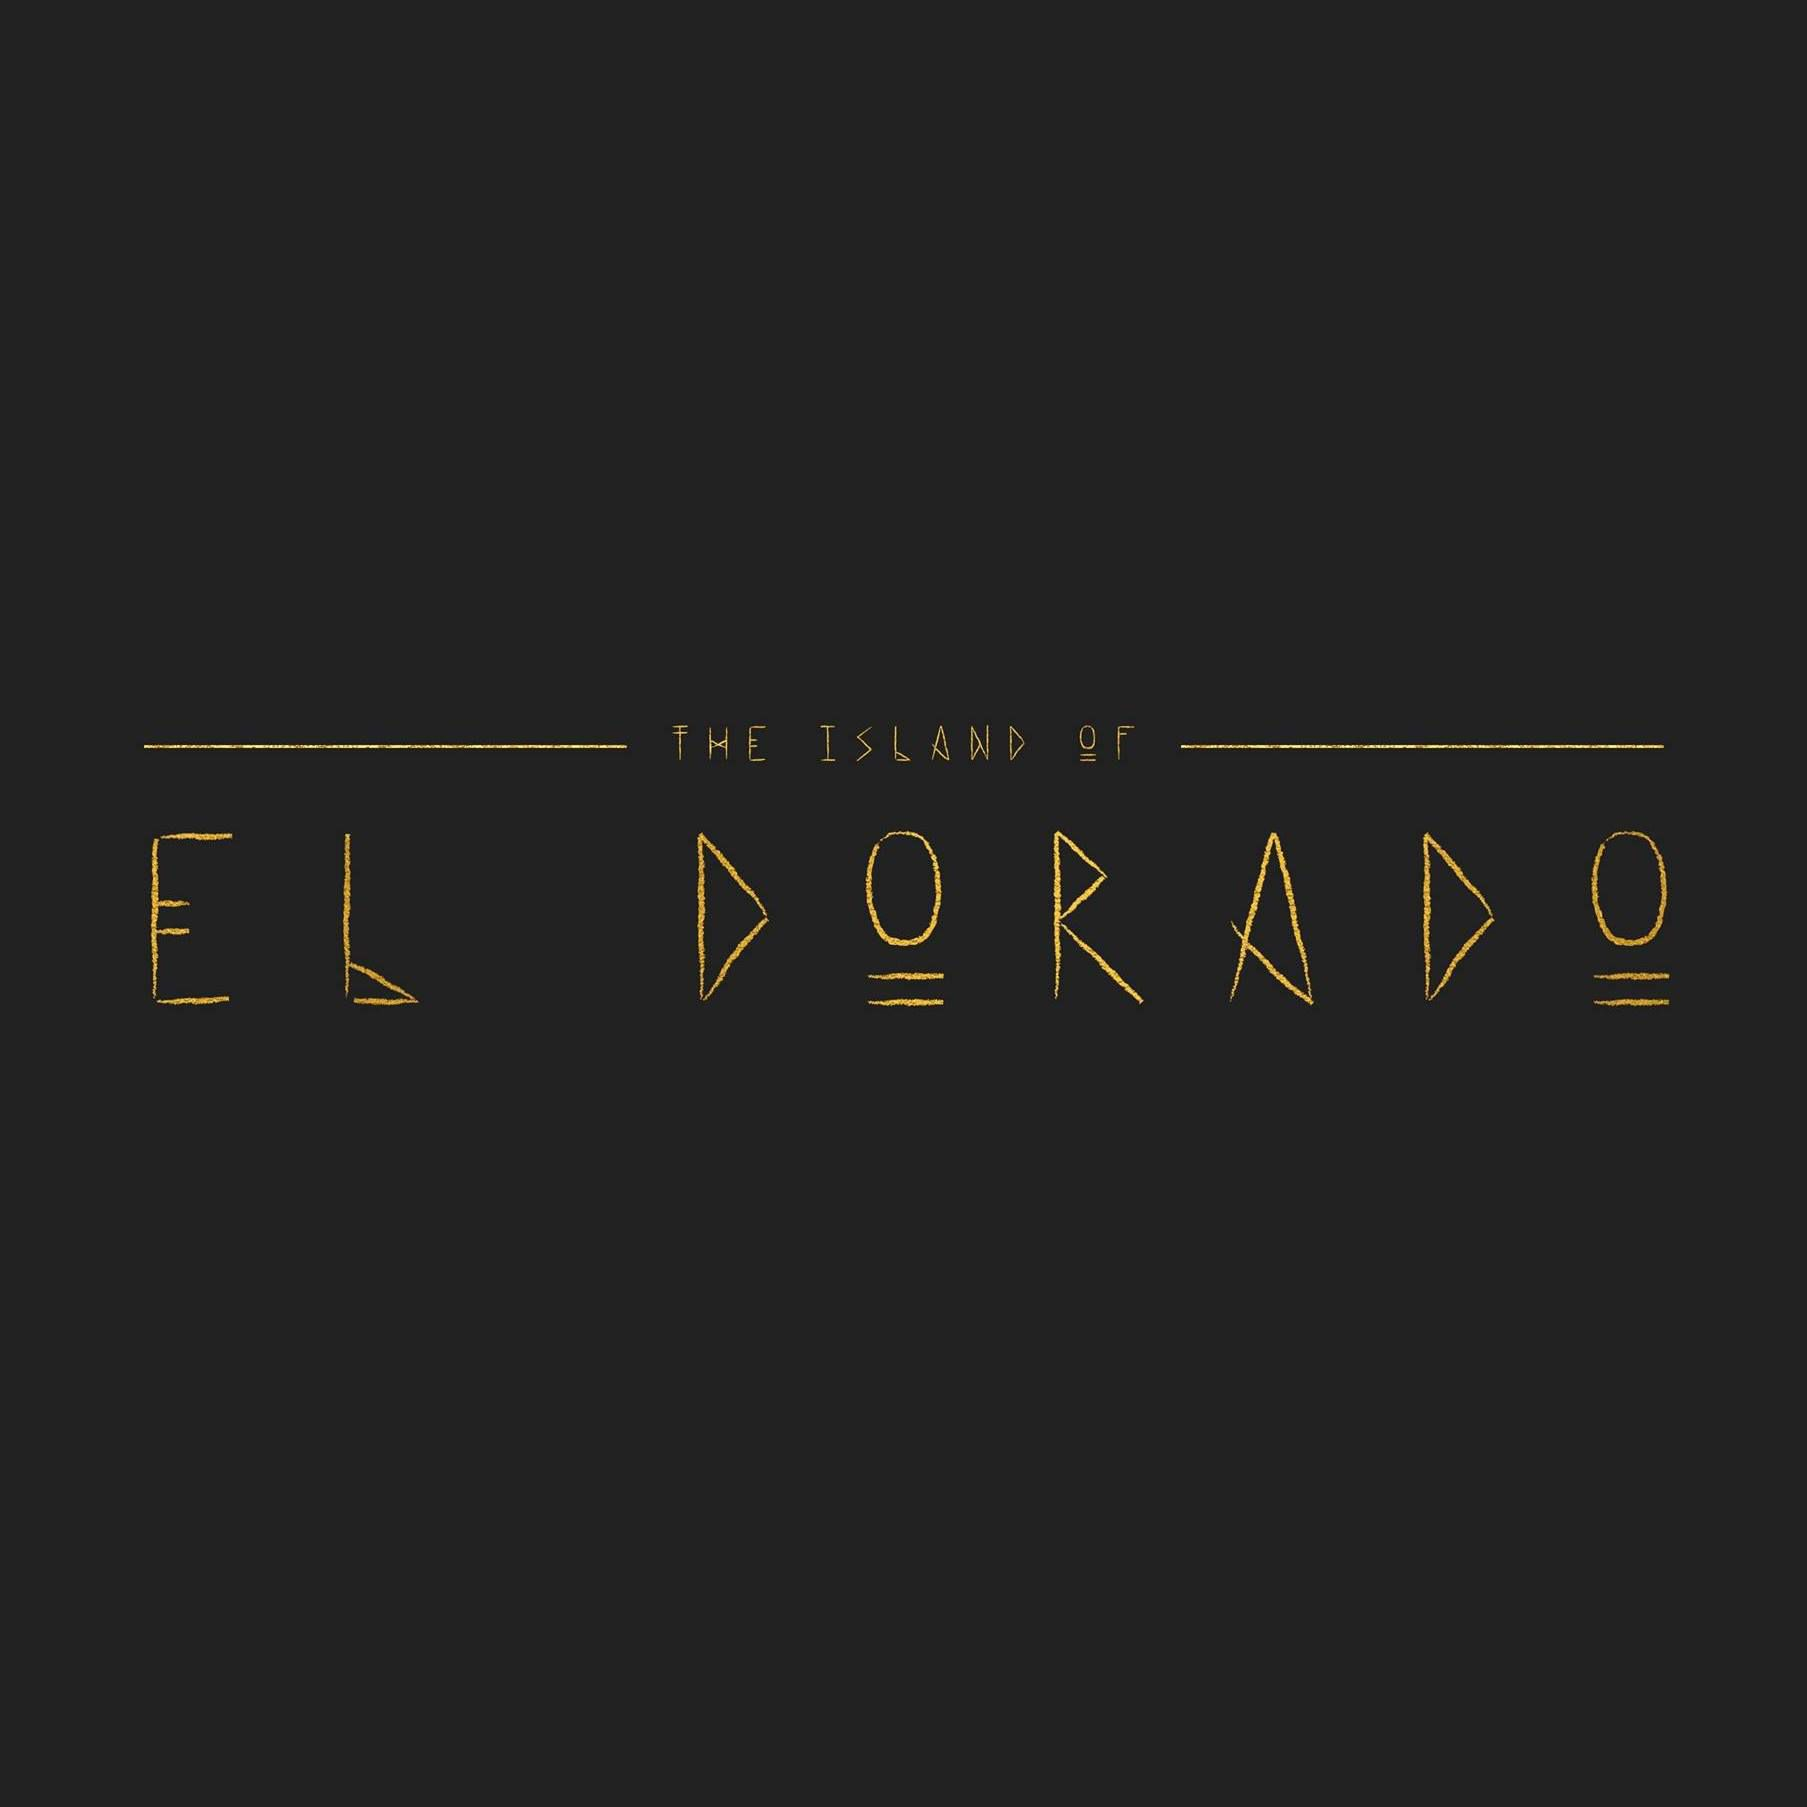 The Island of El Dorado